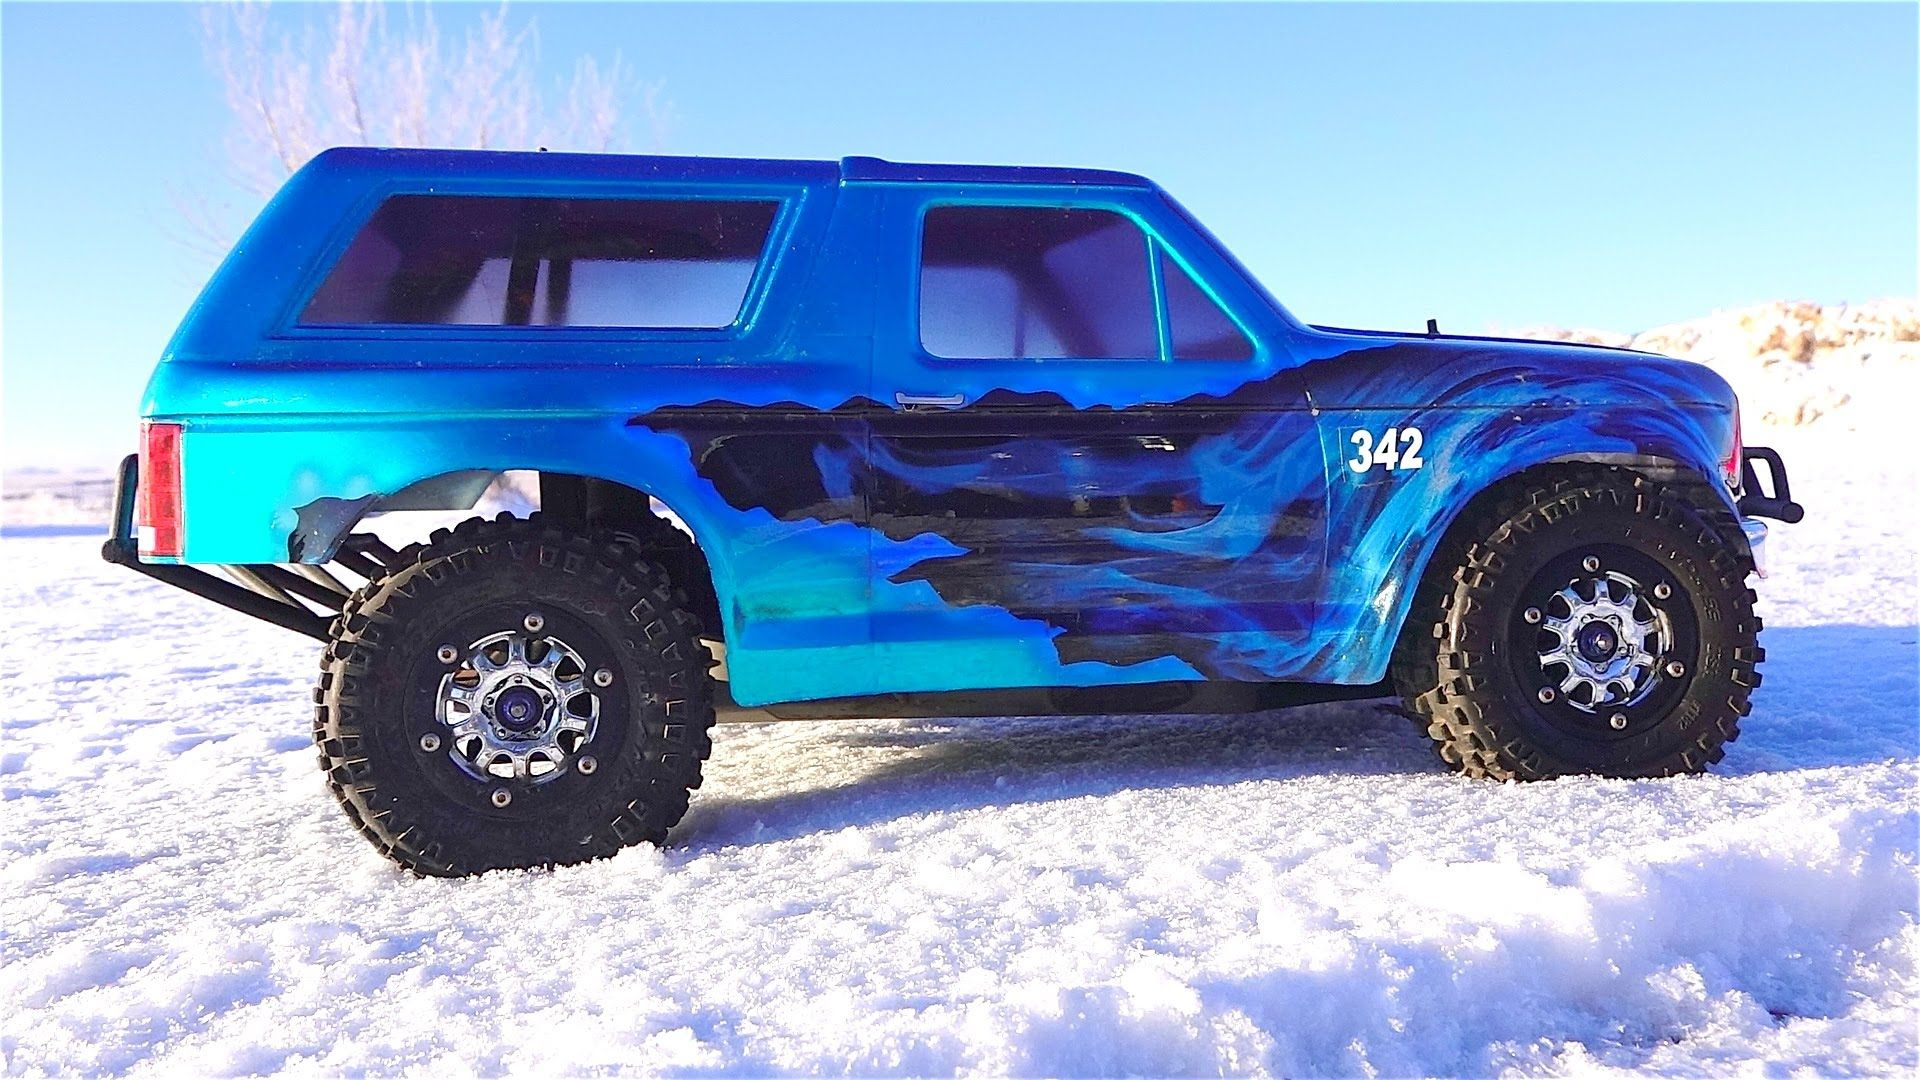 Big blue bad A Traxxas truck ready to shred snow with the best of them